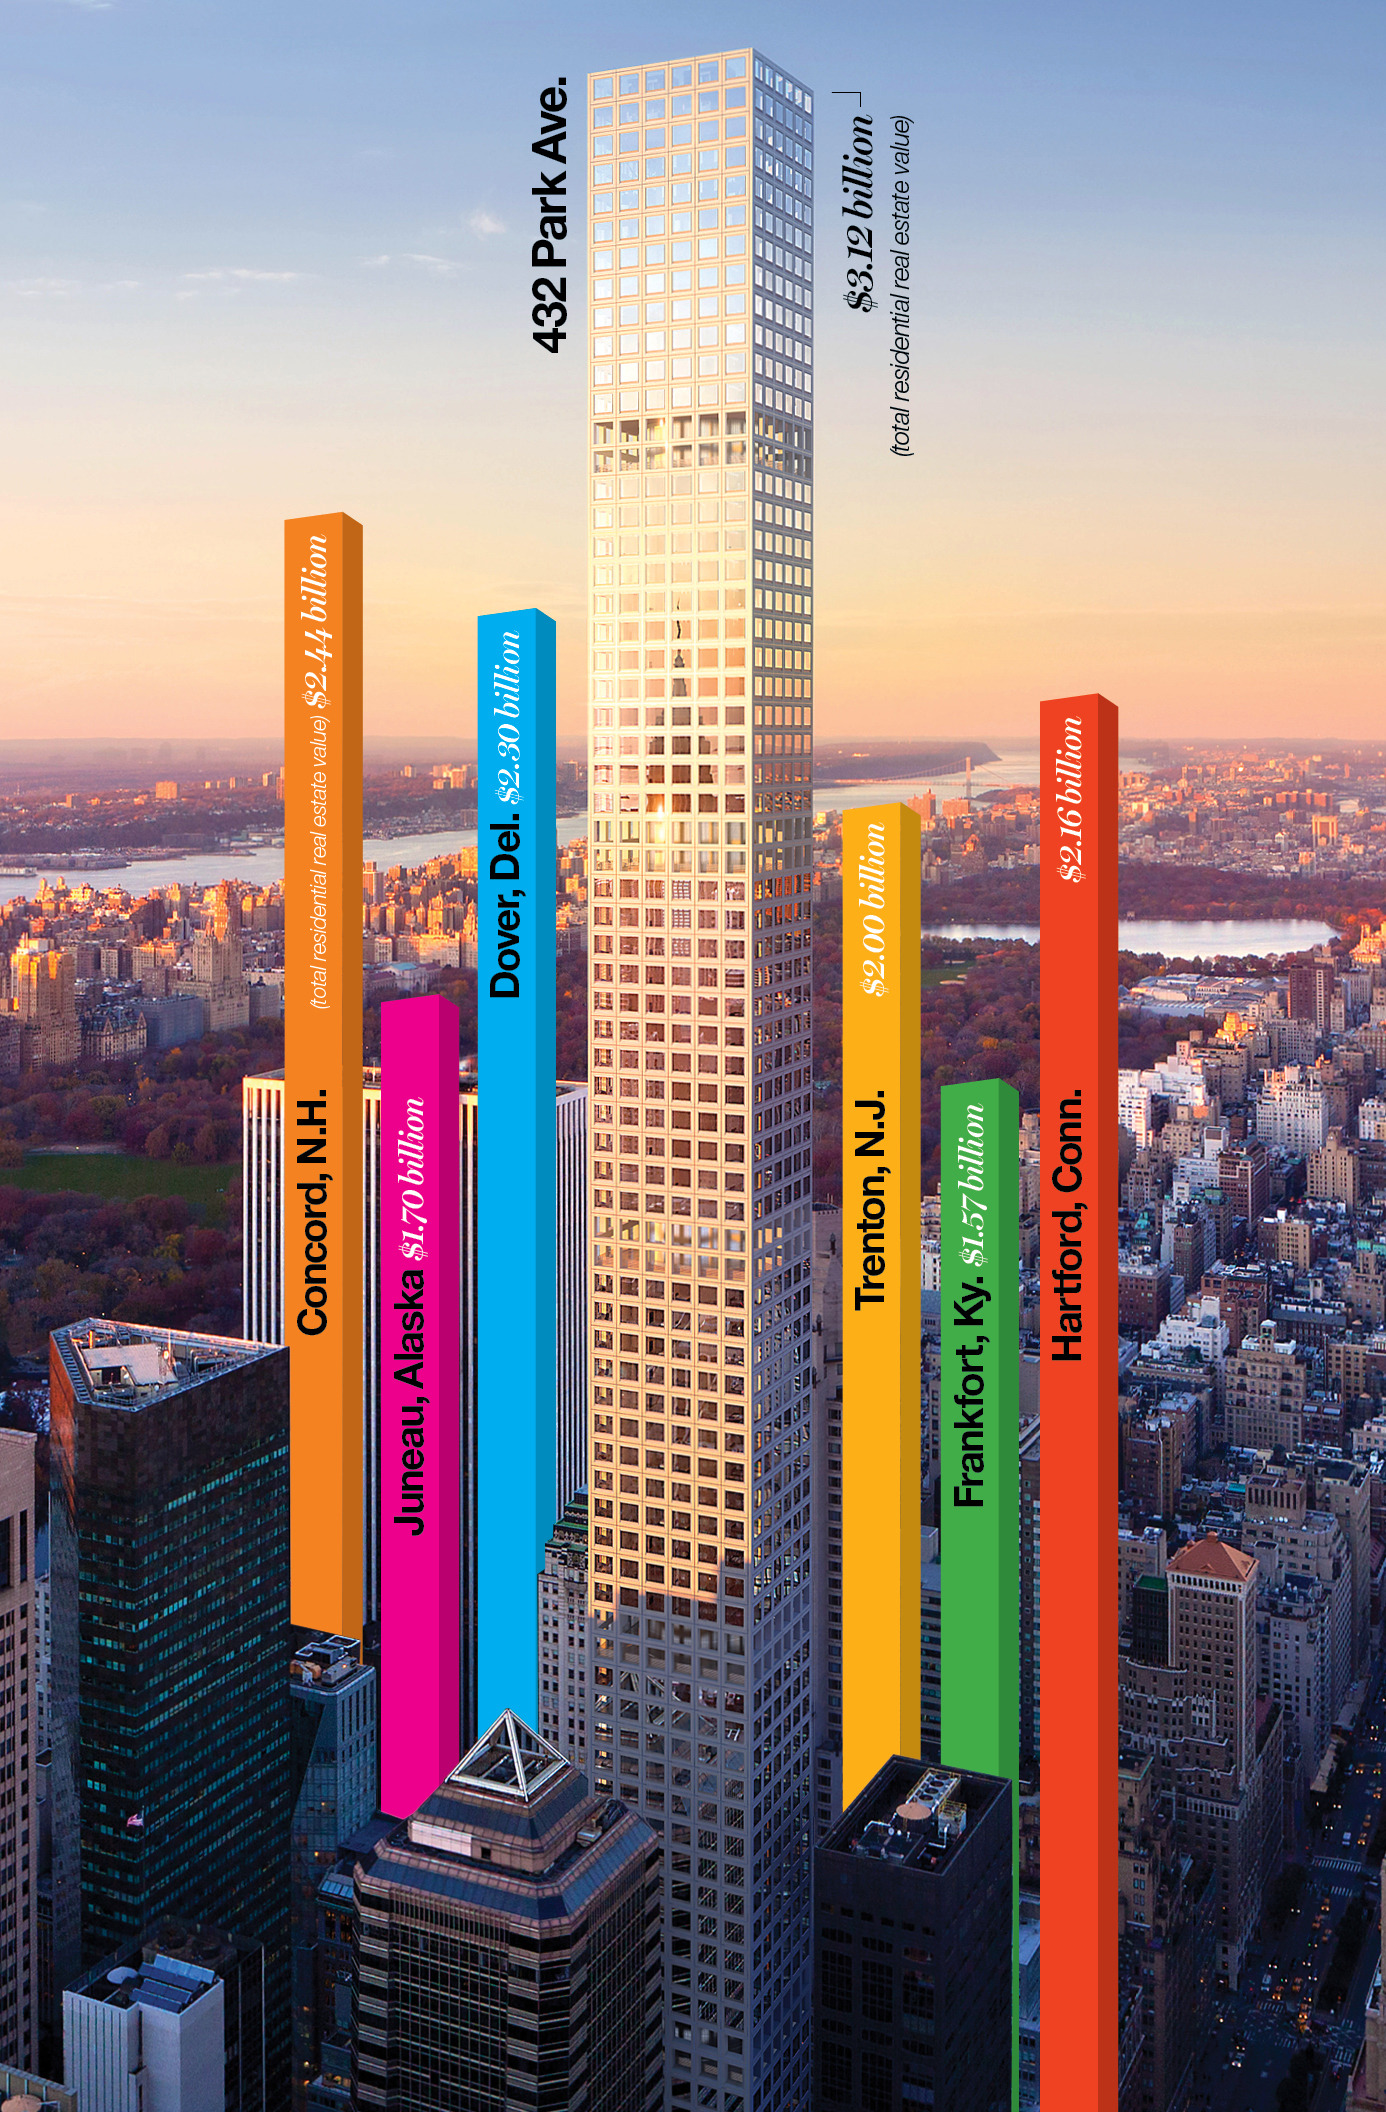 Height Of 432 Park Avenue Awesome Best 55 432 Park Avenue Wallpaper On Hipwallpaper